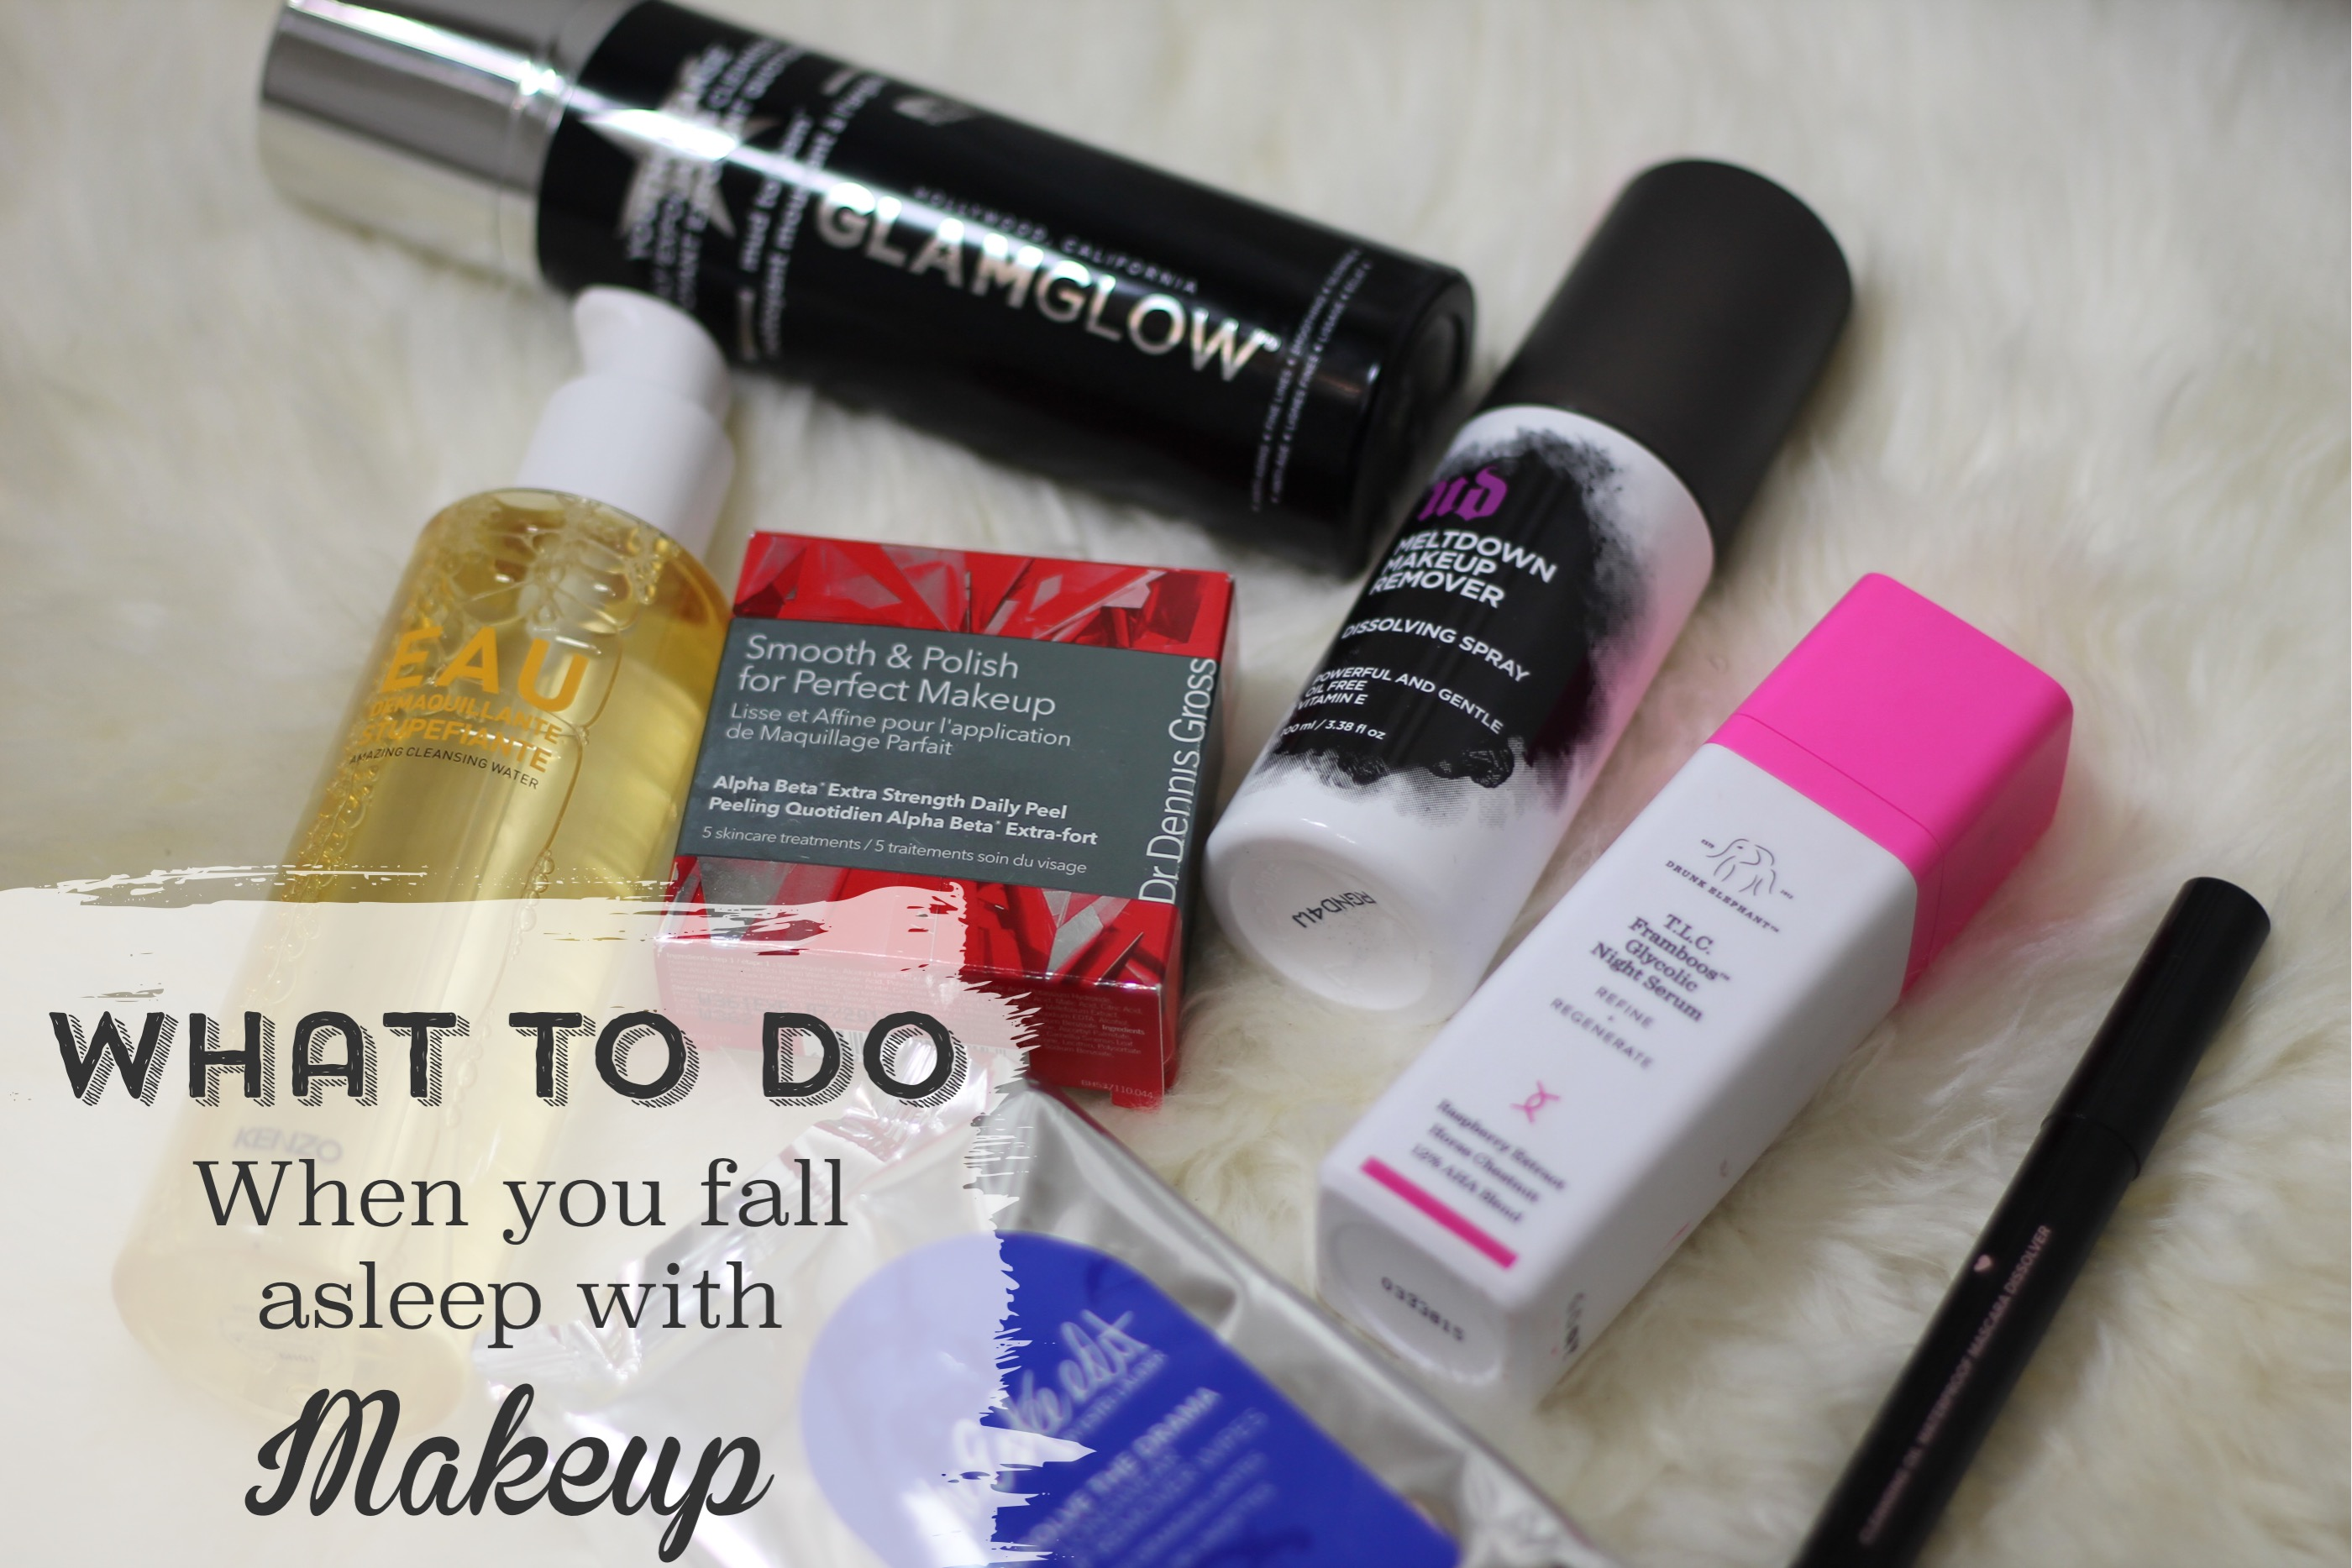 I FELL ASLEEP IN MY MAKEUP. NOW WHAT SHOULD I DO, THE BODY SHOP Strawberry Body Butter J.ONE Red Jelly Pack SMASHBOX Smashbox + Vlada Petal Metal Highlighter GIORGIO ARMANI BEAUTY Power Fabric Longwear High Cover Foundation SPF 25 HUDA BEAUTY Easy Bake Loose Baking & Setting Powder HUDA BEAUTY The Overachiever High Coverage Concealer FEELING BEAUTIFUL 4-in-1 Apple Cider Vinegar Foaming Clay Mask BIORÉ Baking Soda Cleansing Micellar Water dark skin beauty blogger, sephora vib rouge blogger beauty makeup skin care reviews, the best way how to take makeup off,